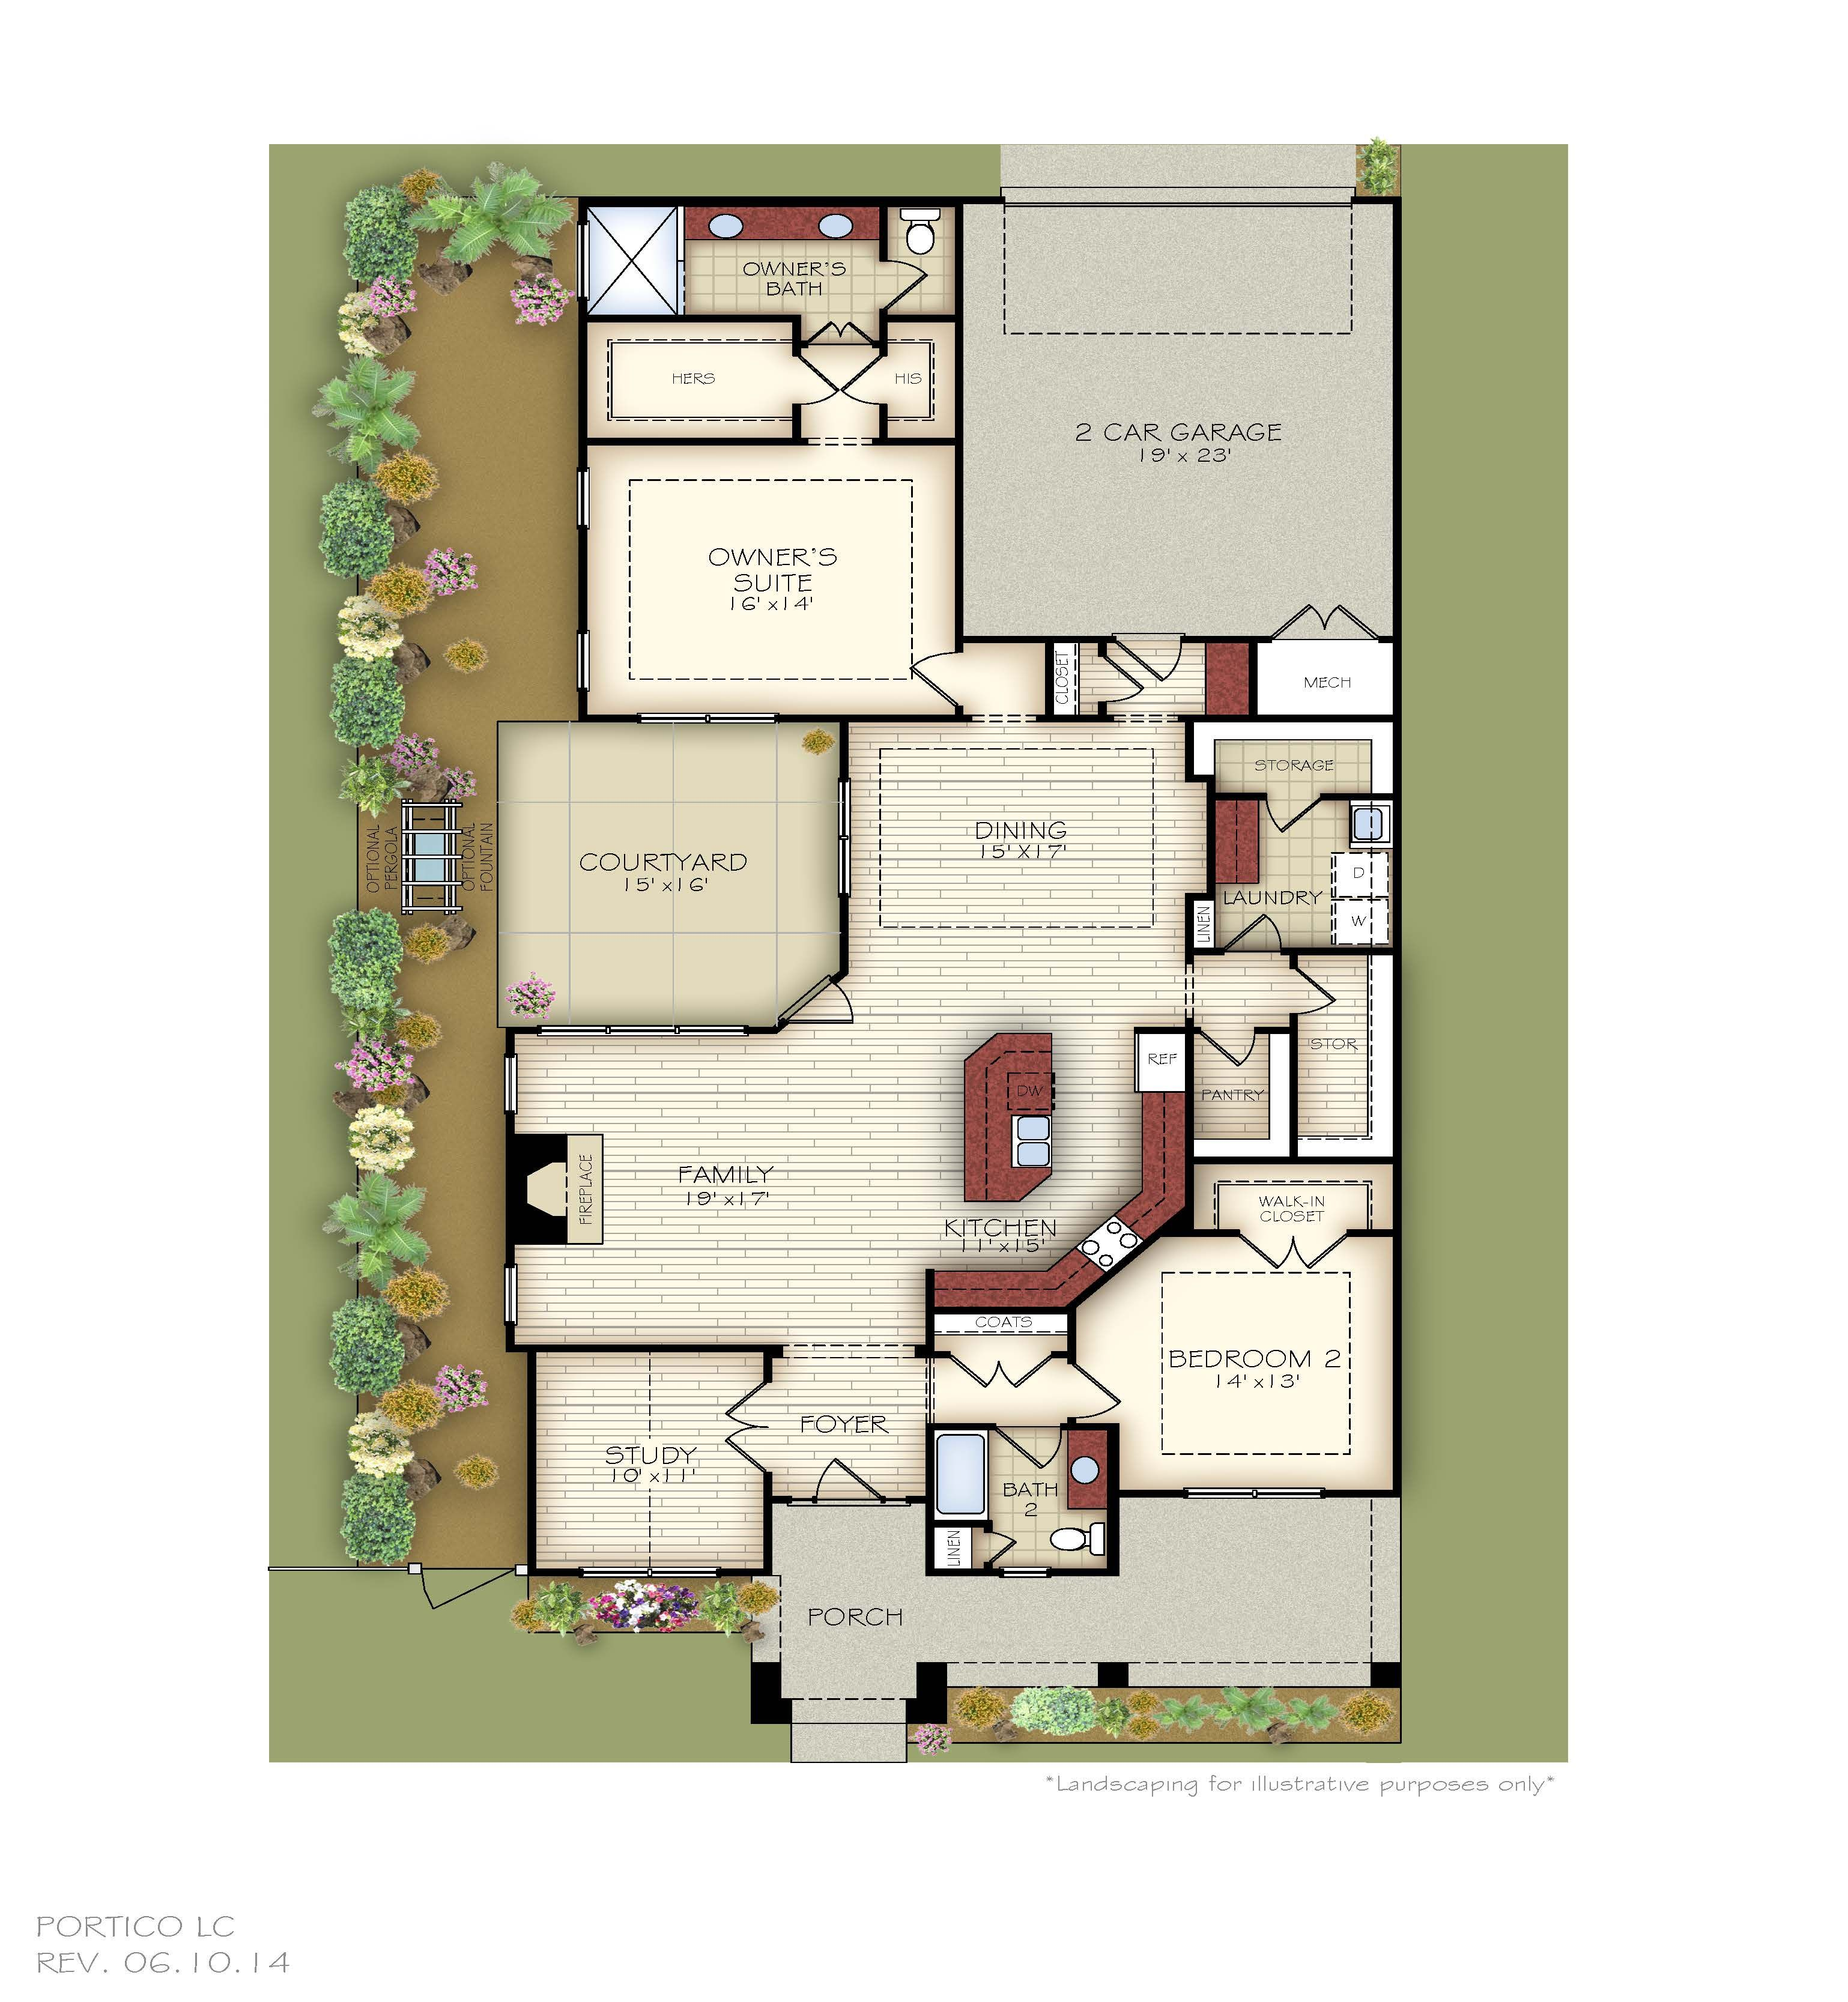 Introducing epcons most sophisticated floor plans ever augusta place at laurel creek portico